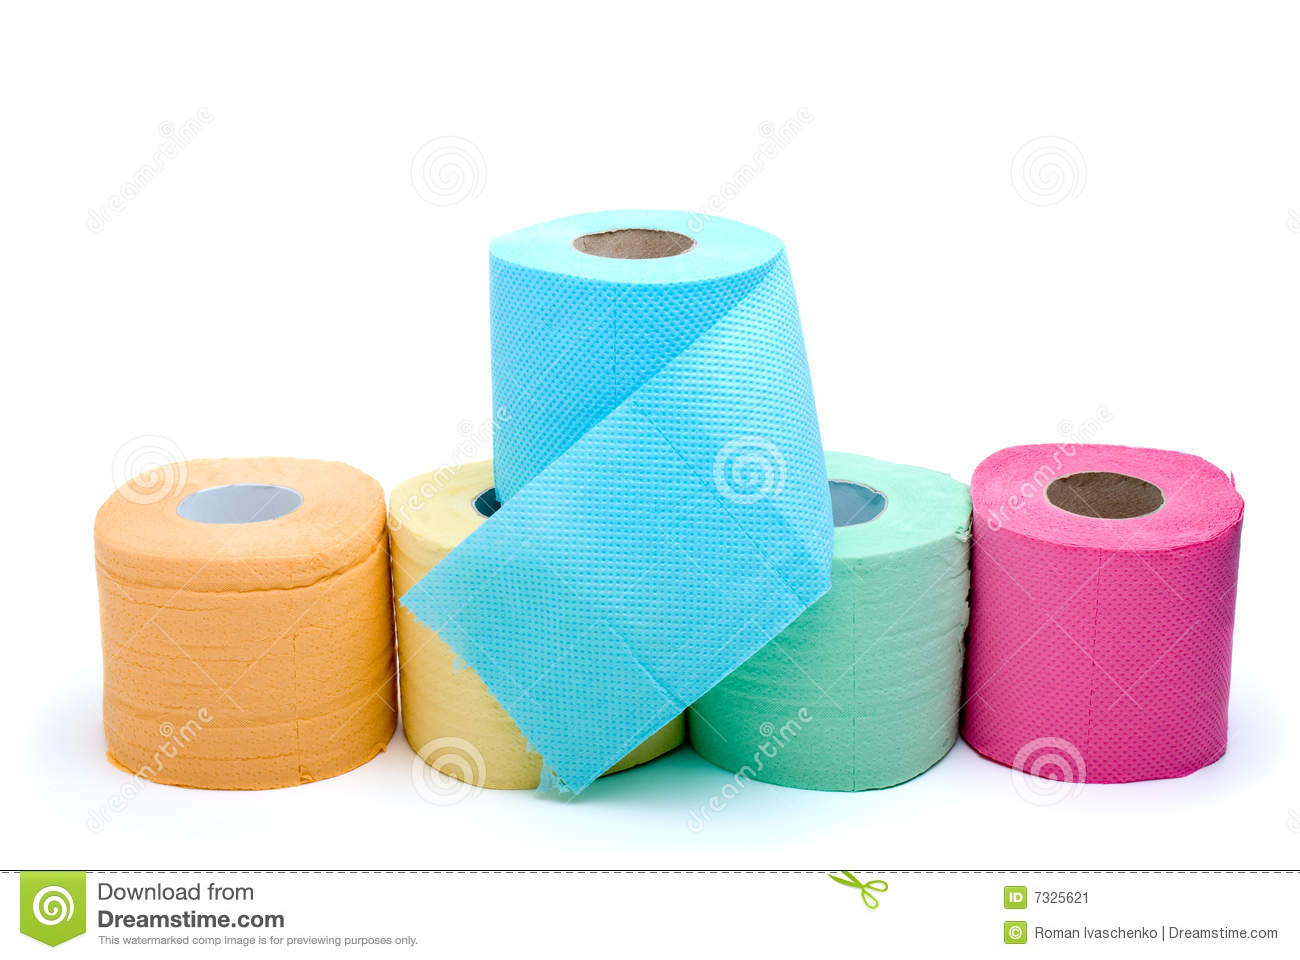 More similar stock images of ` Different colored toilet paper `